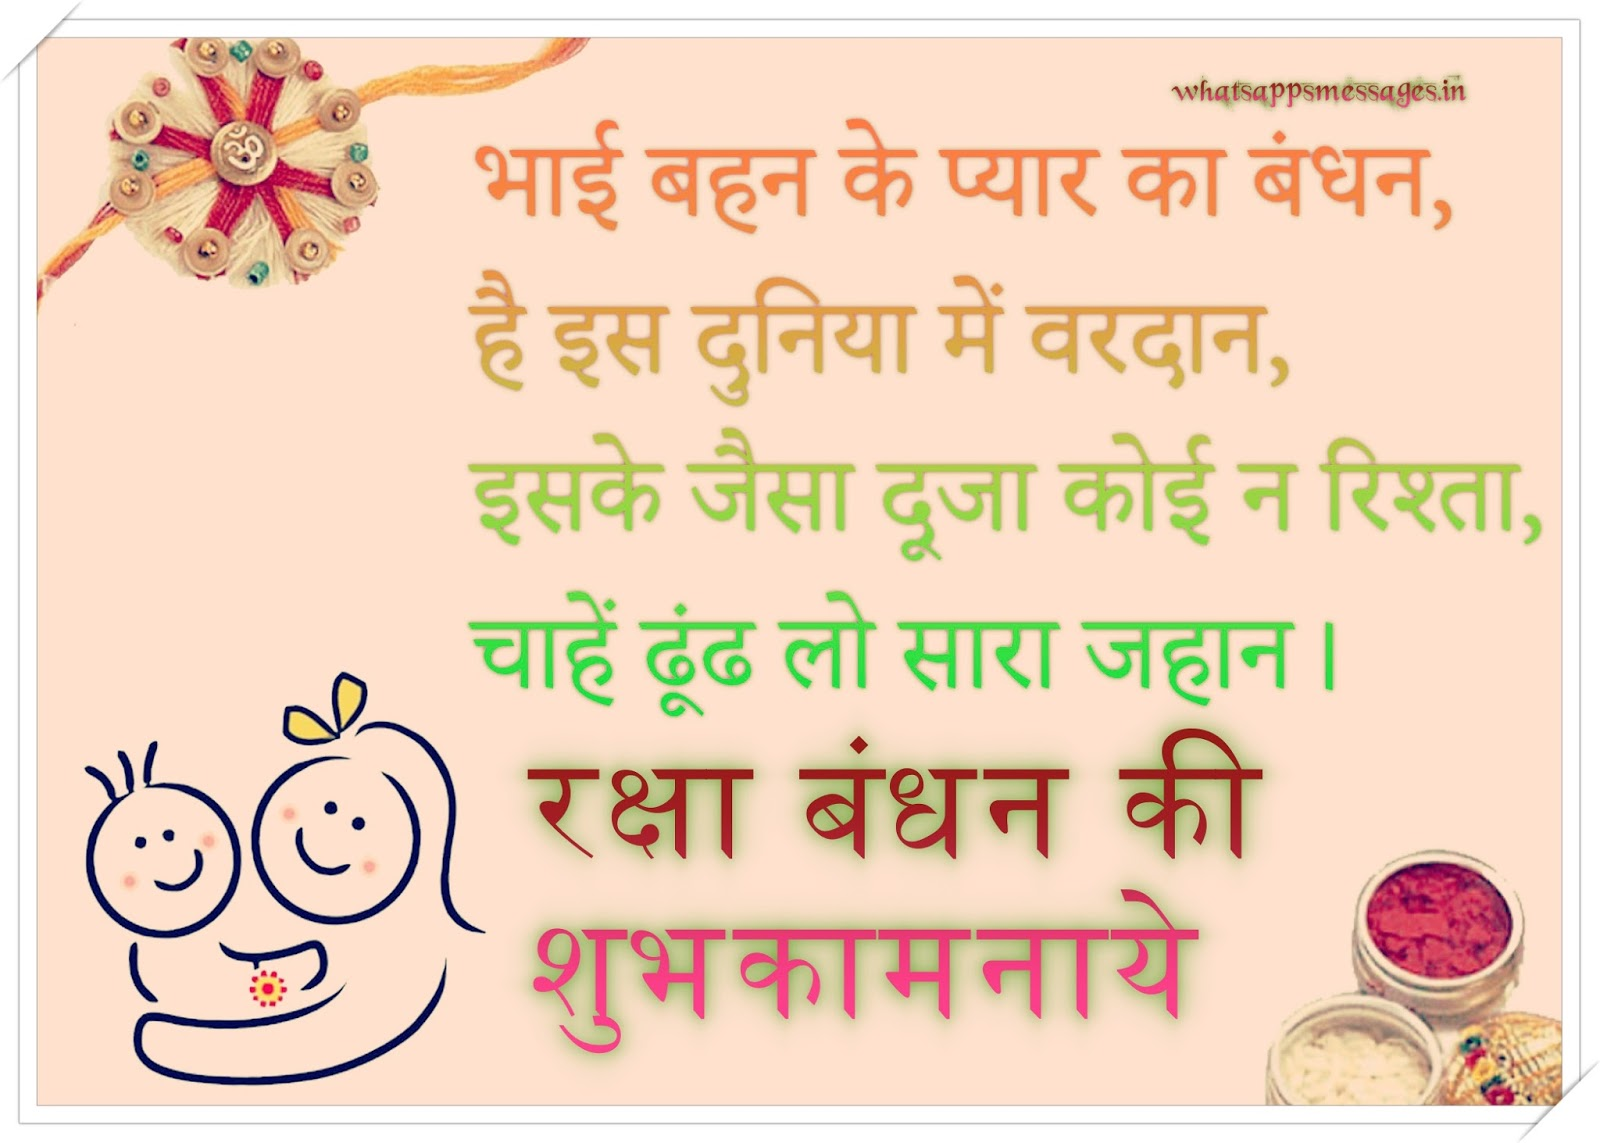 Raksha bandhan shayari whatsapp messages brother raksha bandhan shayari altavistaventures Choice Image